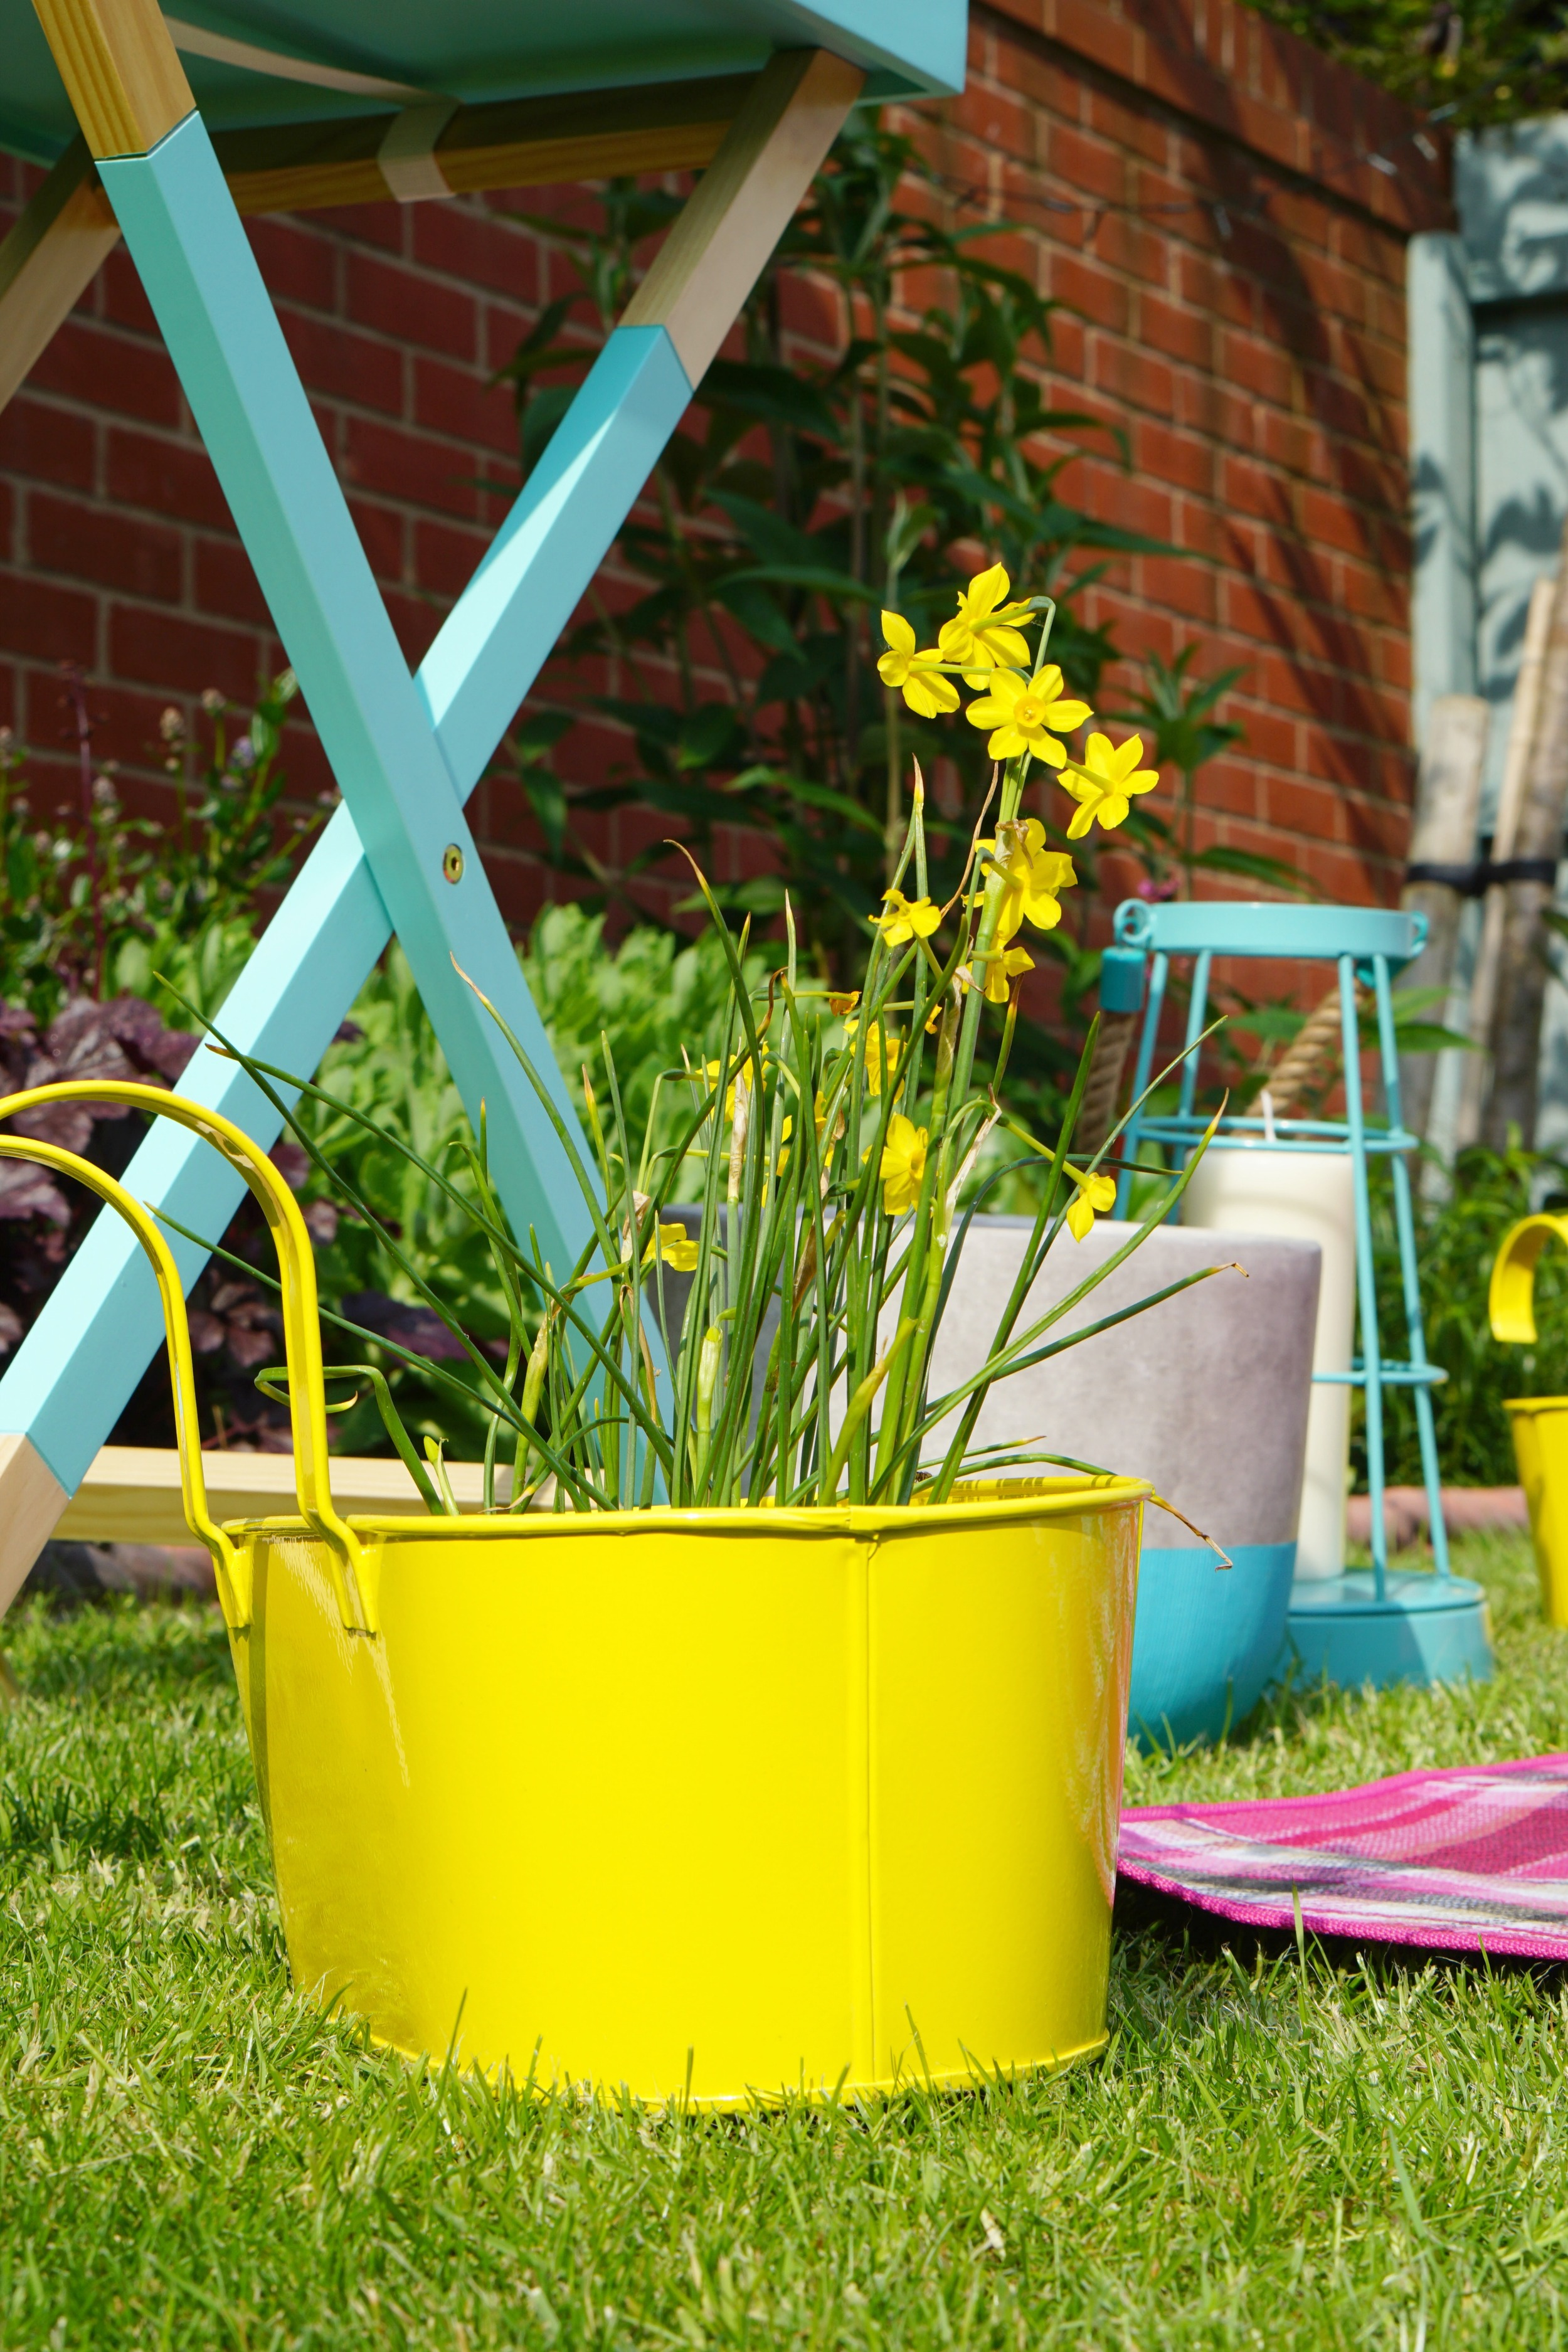 The Ordinary Lovely: Getting the garden ready for summer